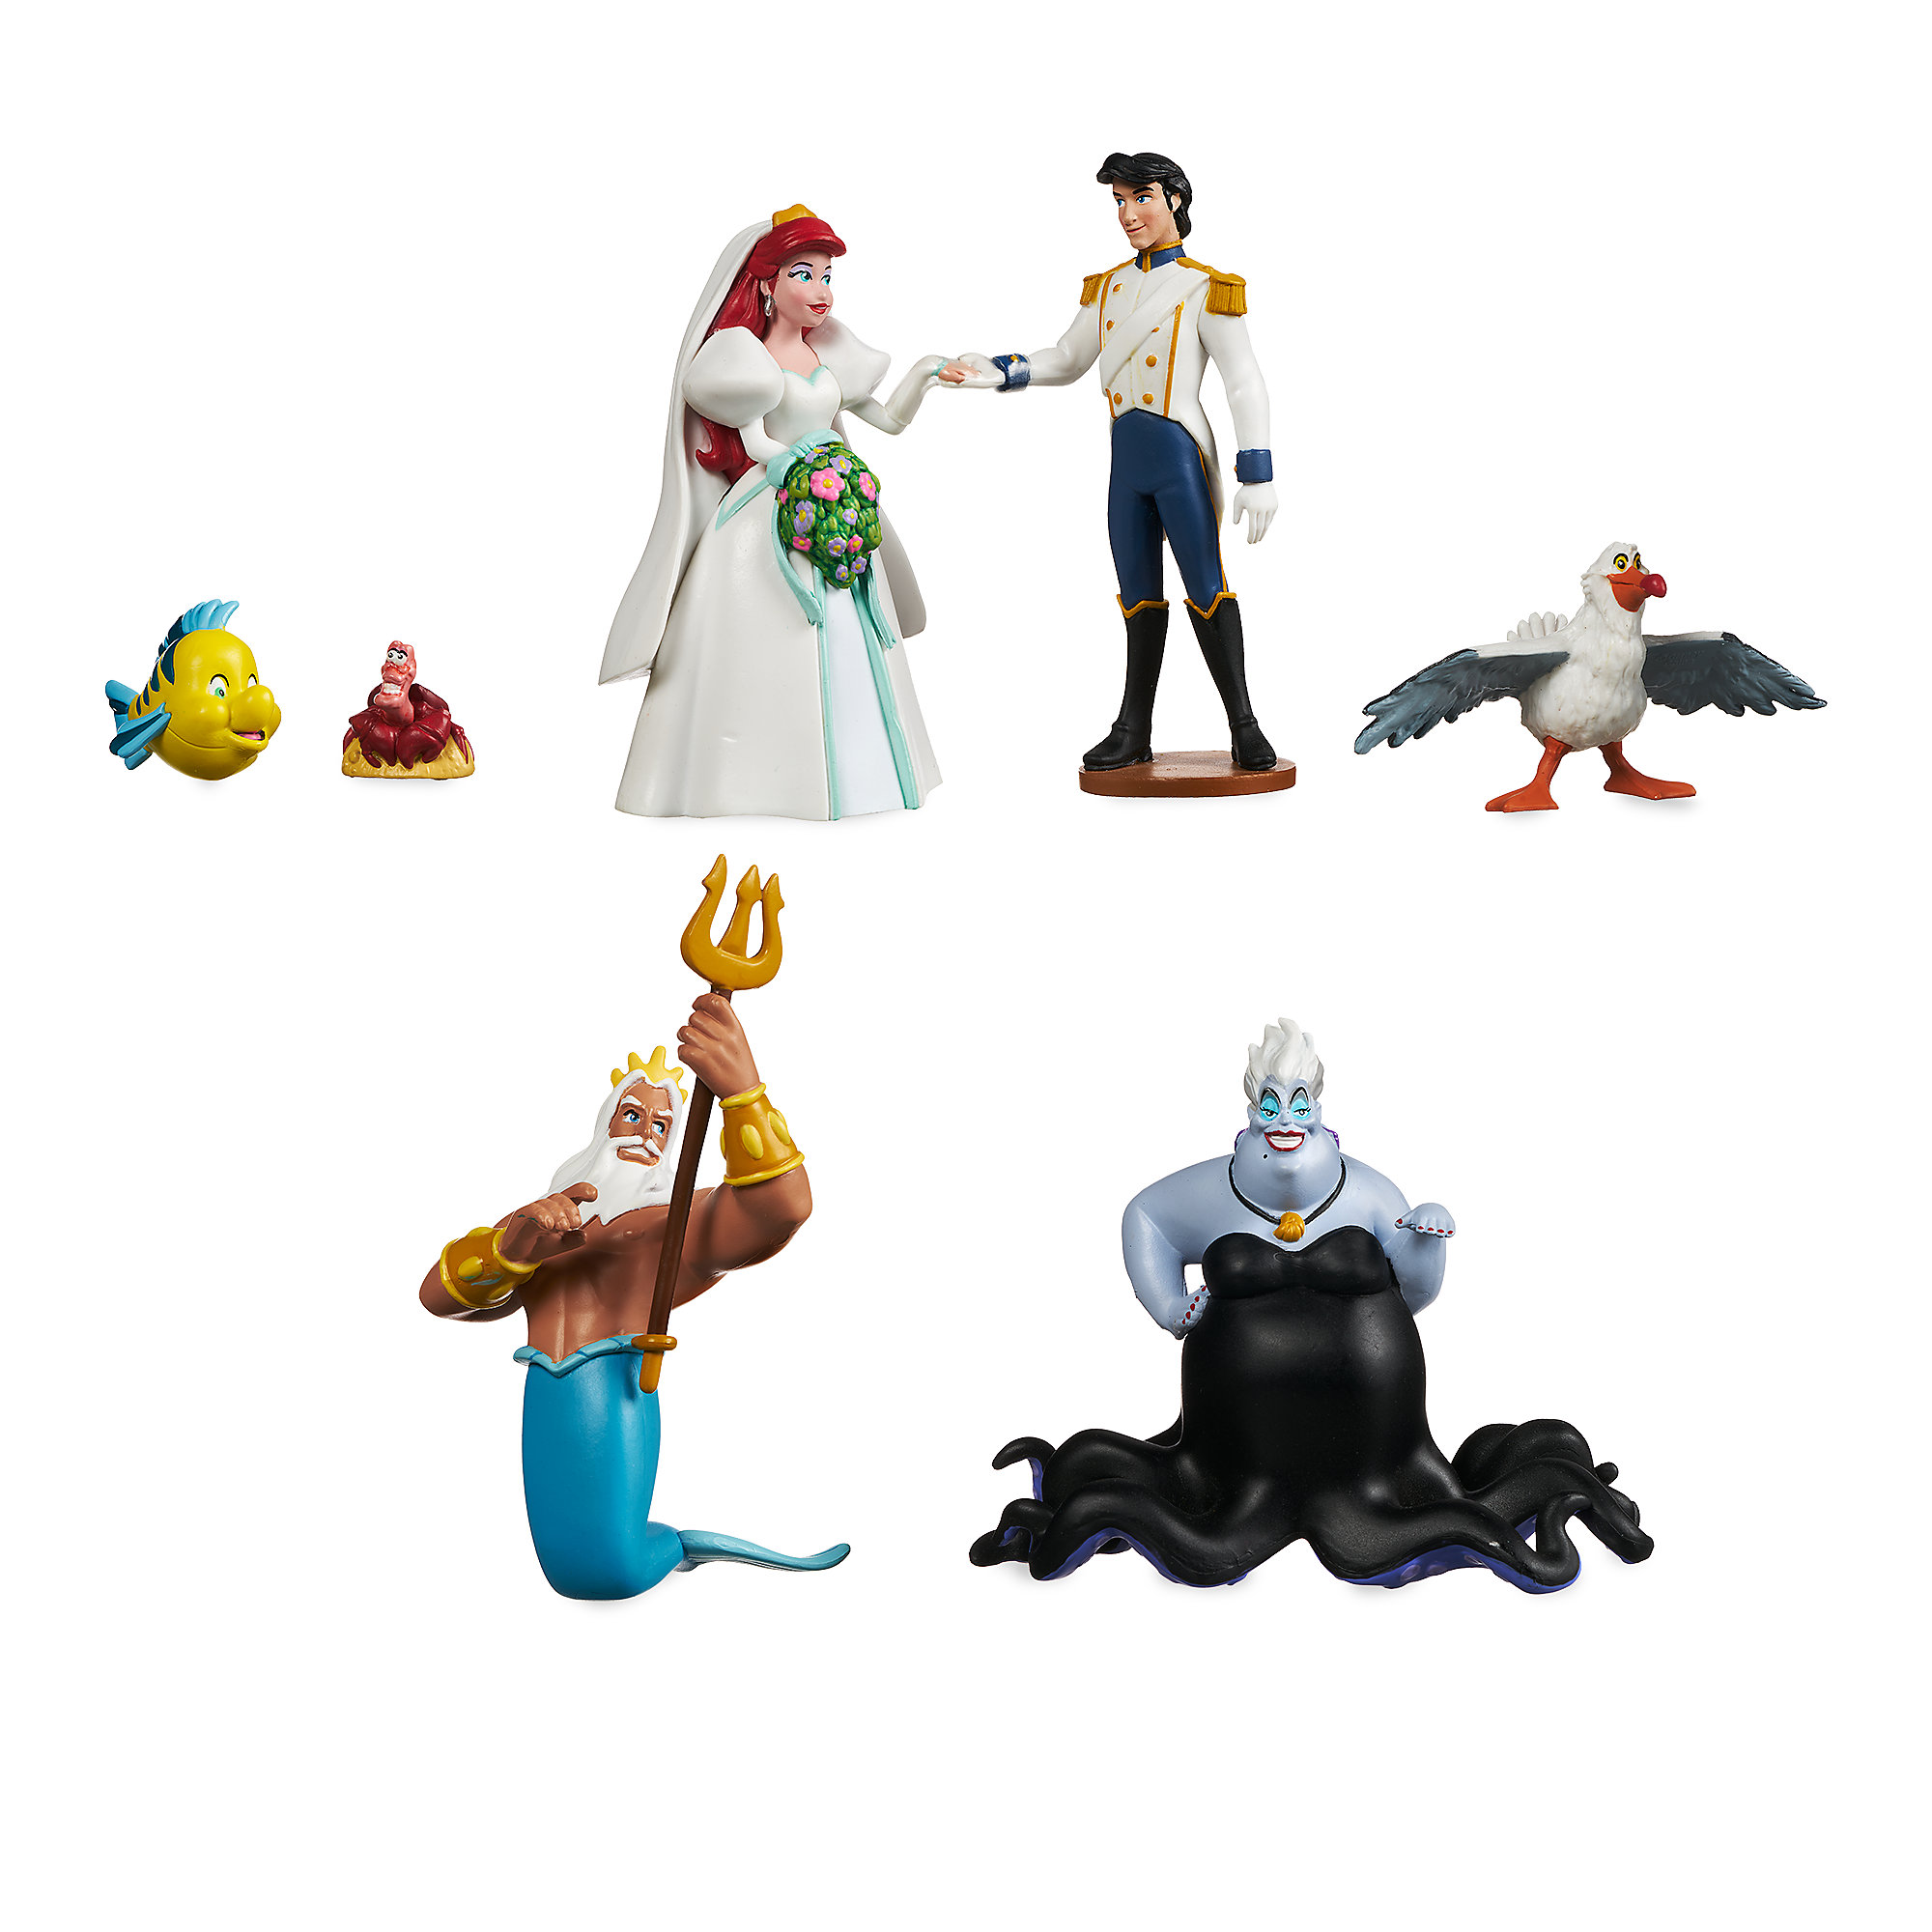 The Little Mermaid Figure Set